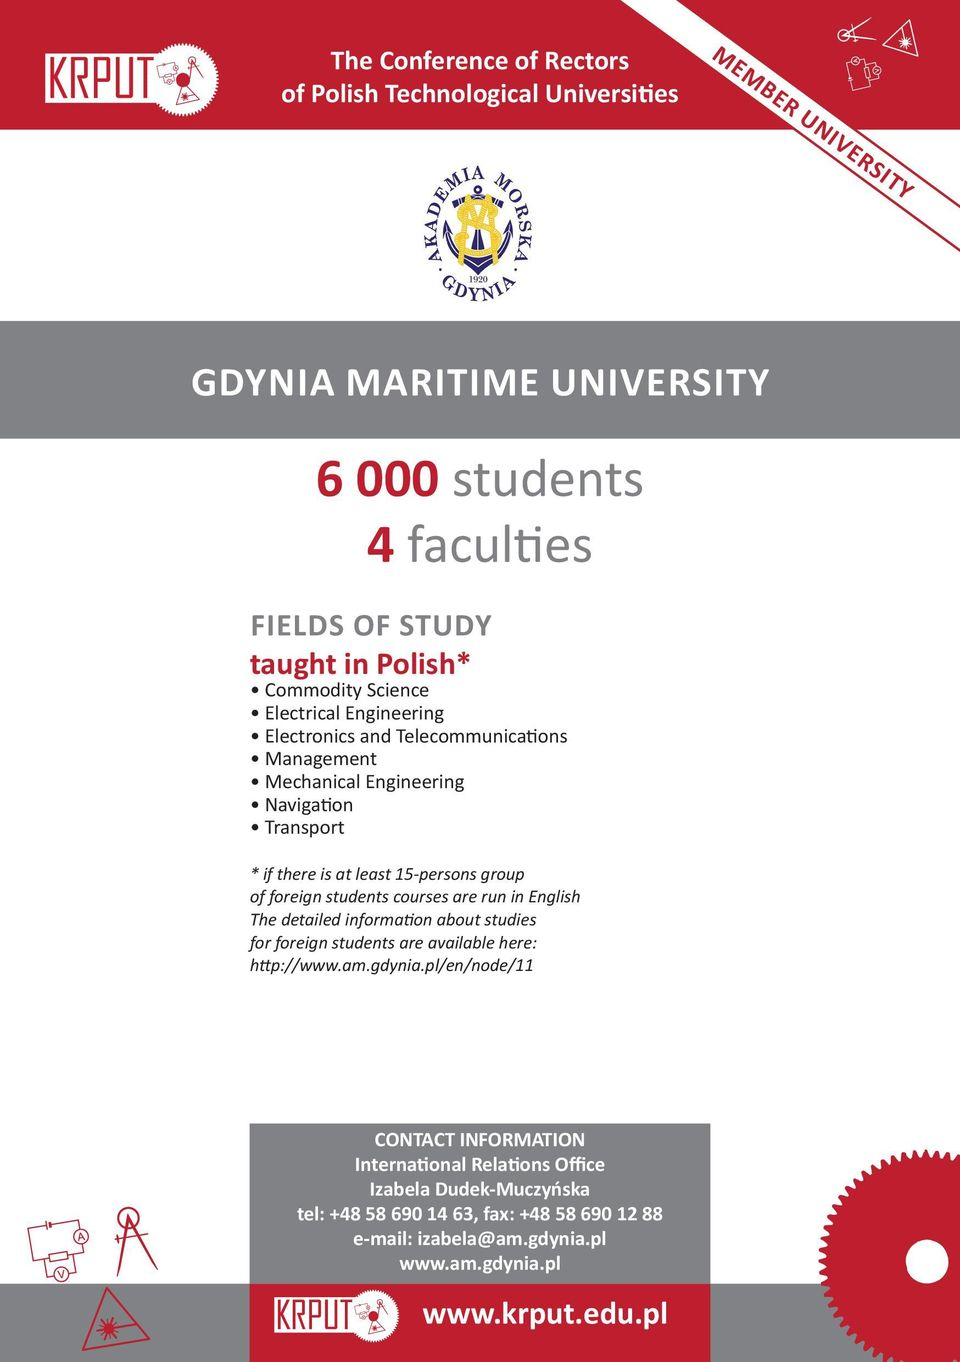 information about studies for foreign students are available here: http://www.am.gdynia.